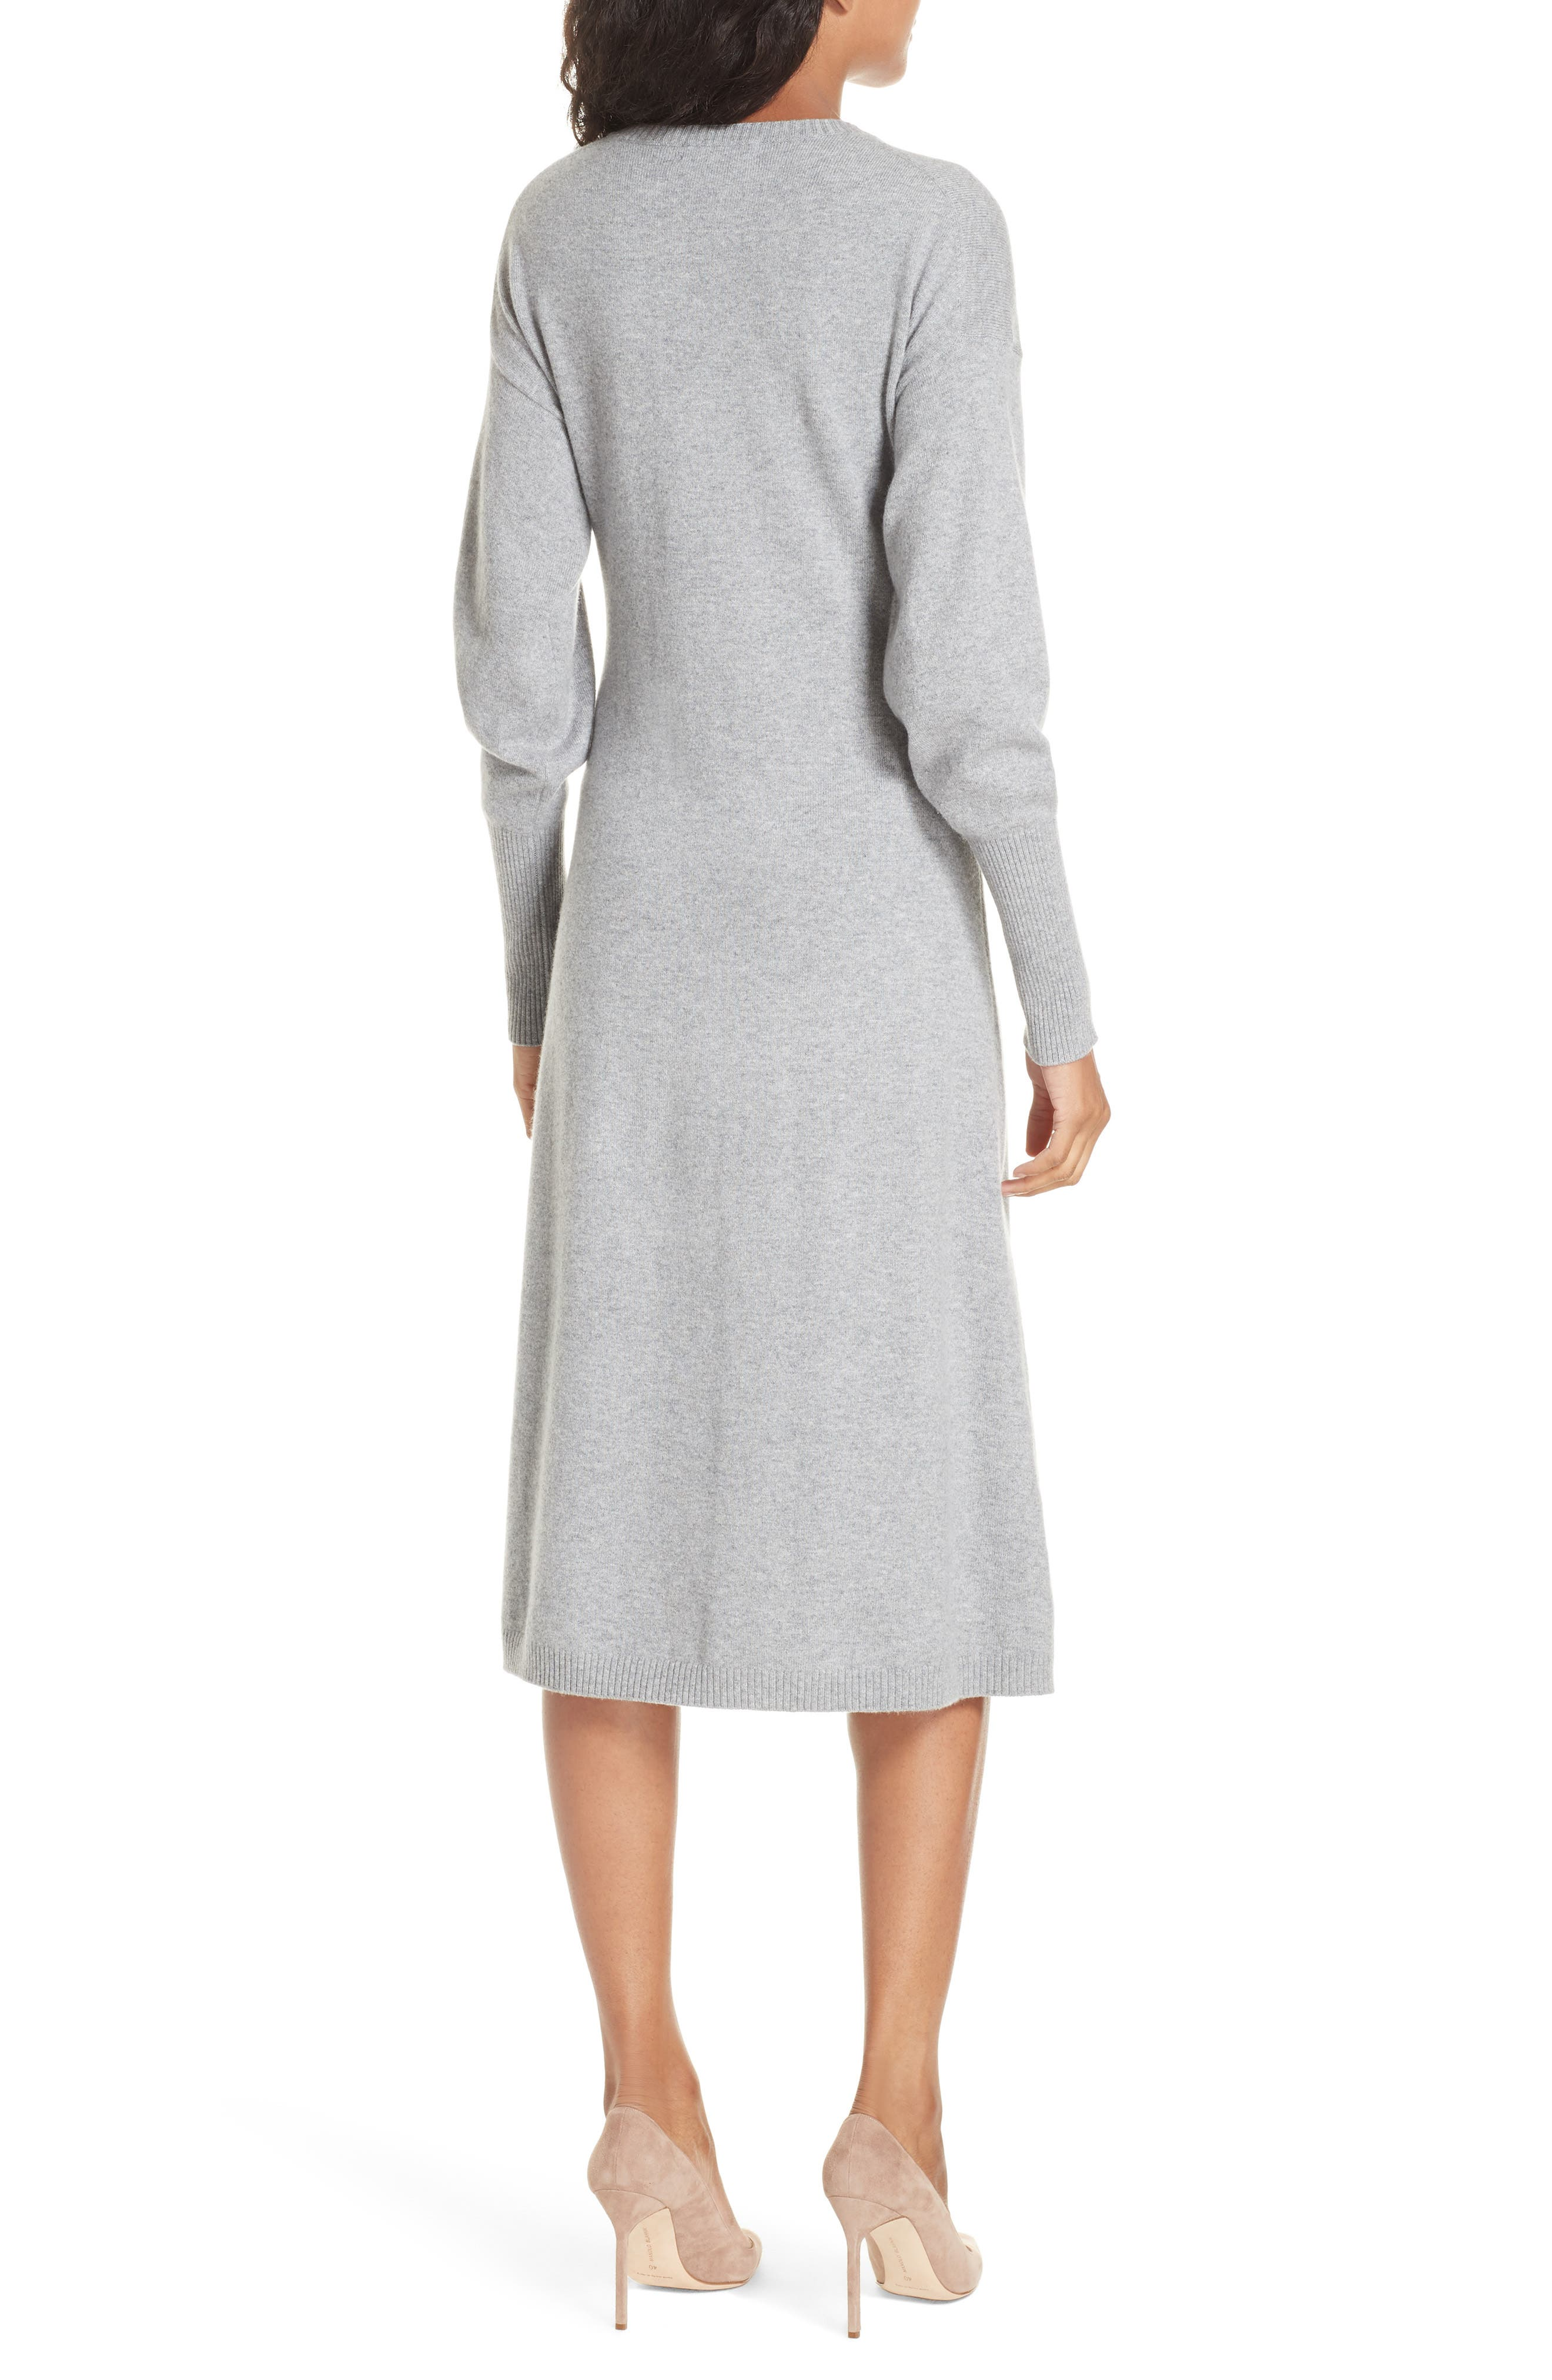 Cashmere Blend Sweater Dress,                             Alternate thumbnail 2, color,                             030